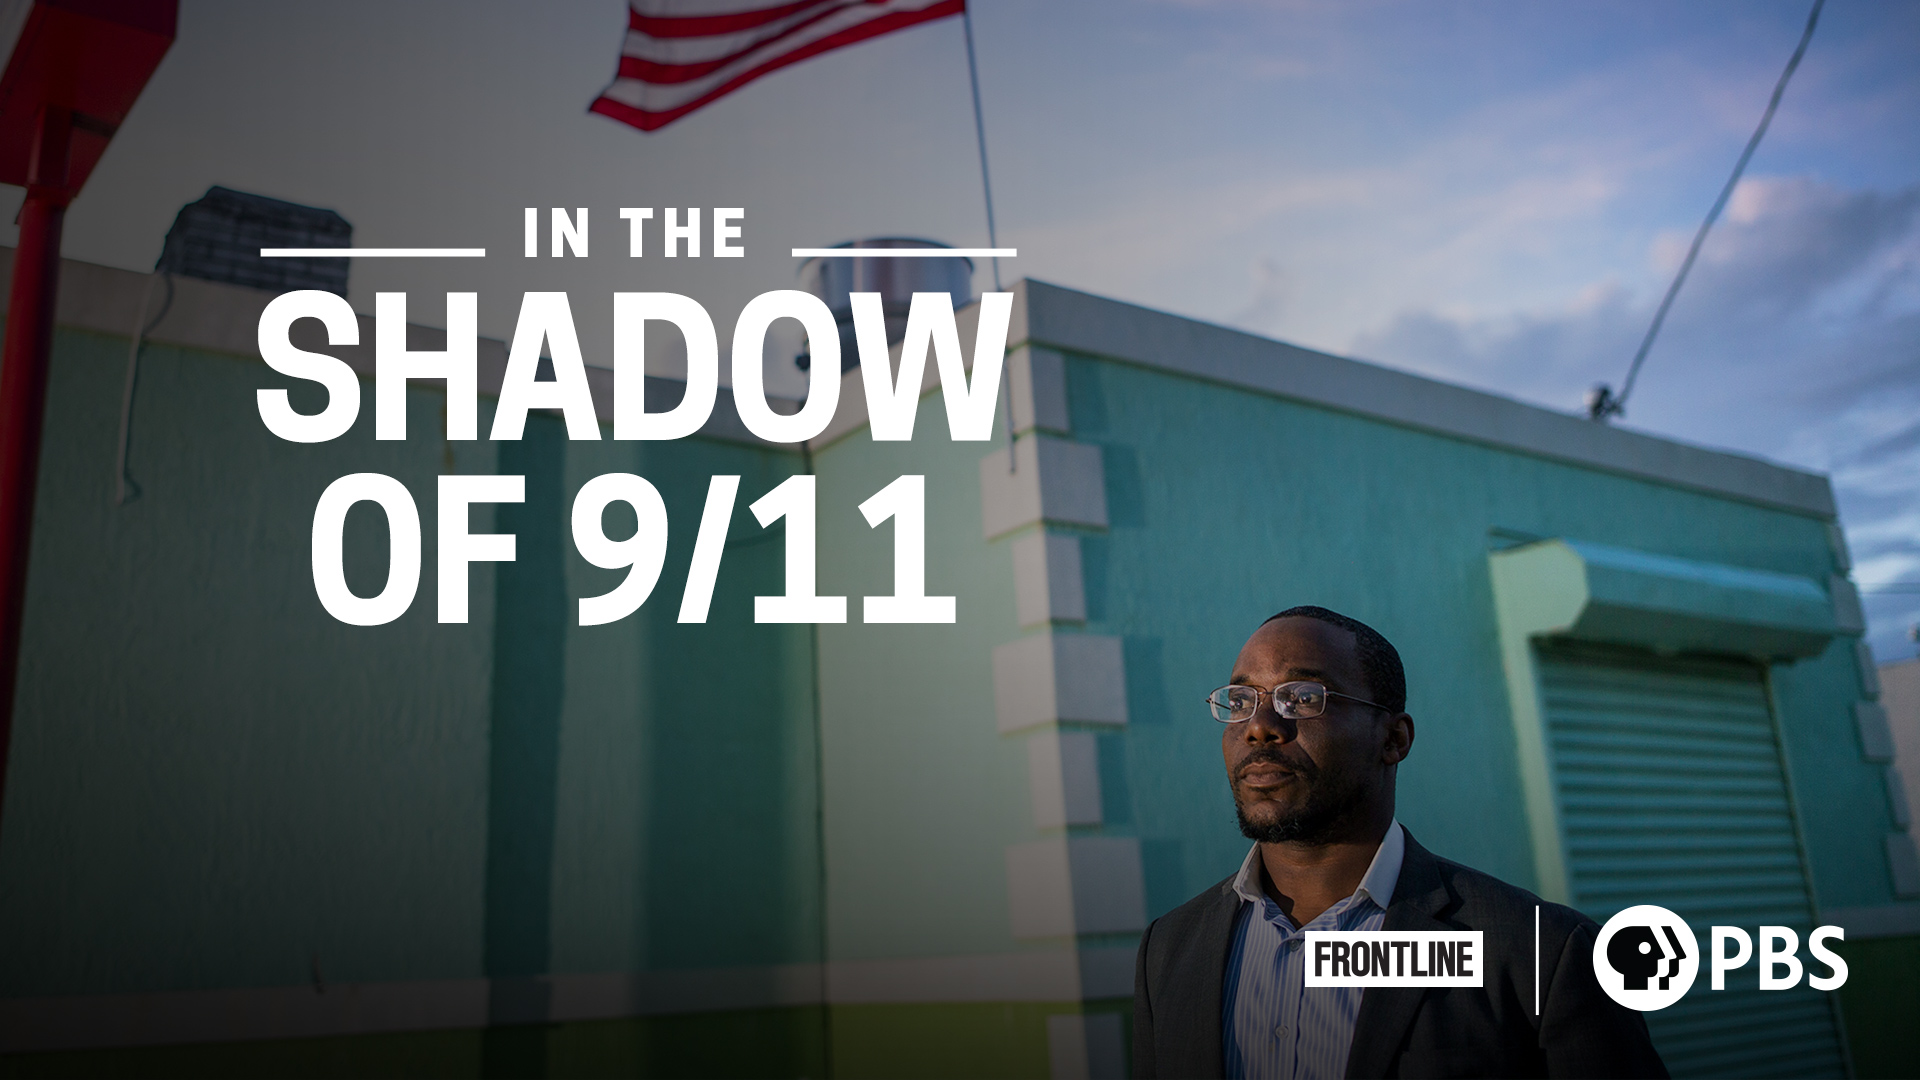 In the Shadow of 9/11